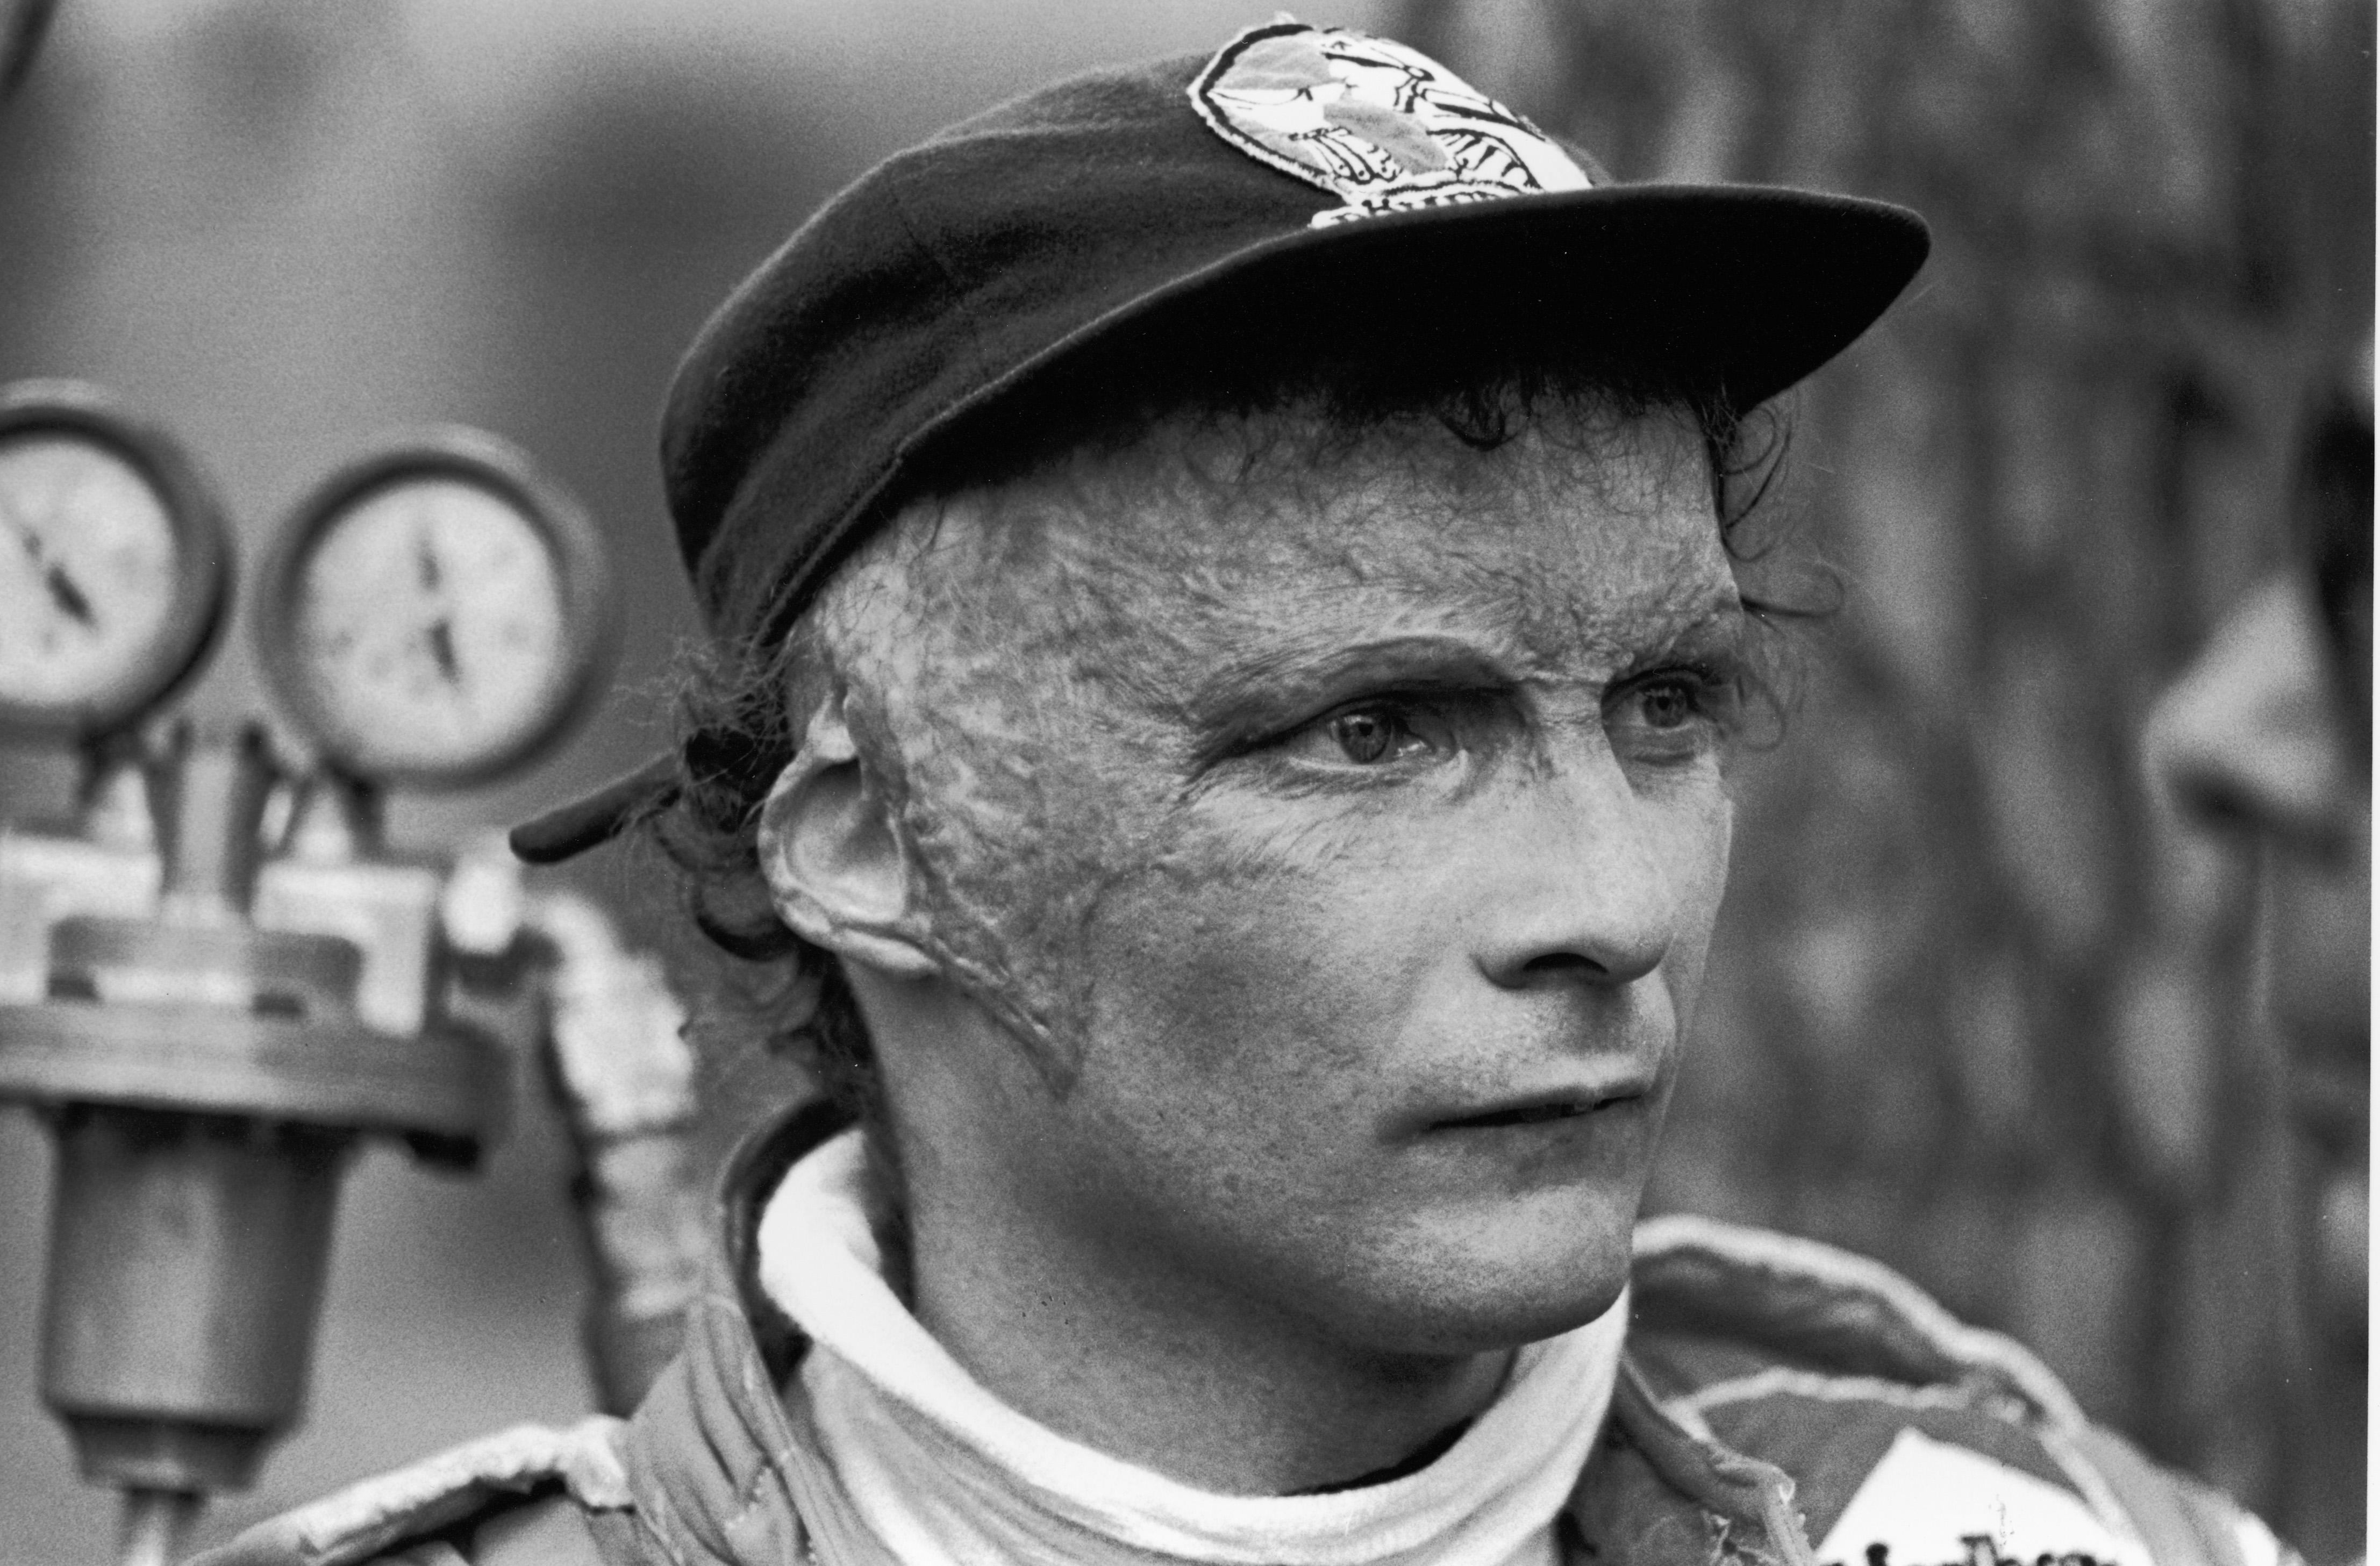 Lauda returned to racing despite being left severely injured in a fireball crash at the German Grand Prix in 1976